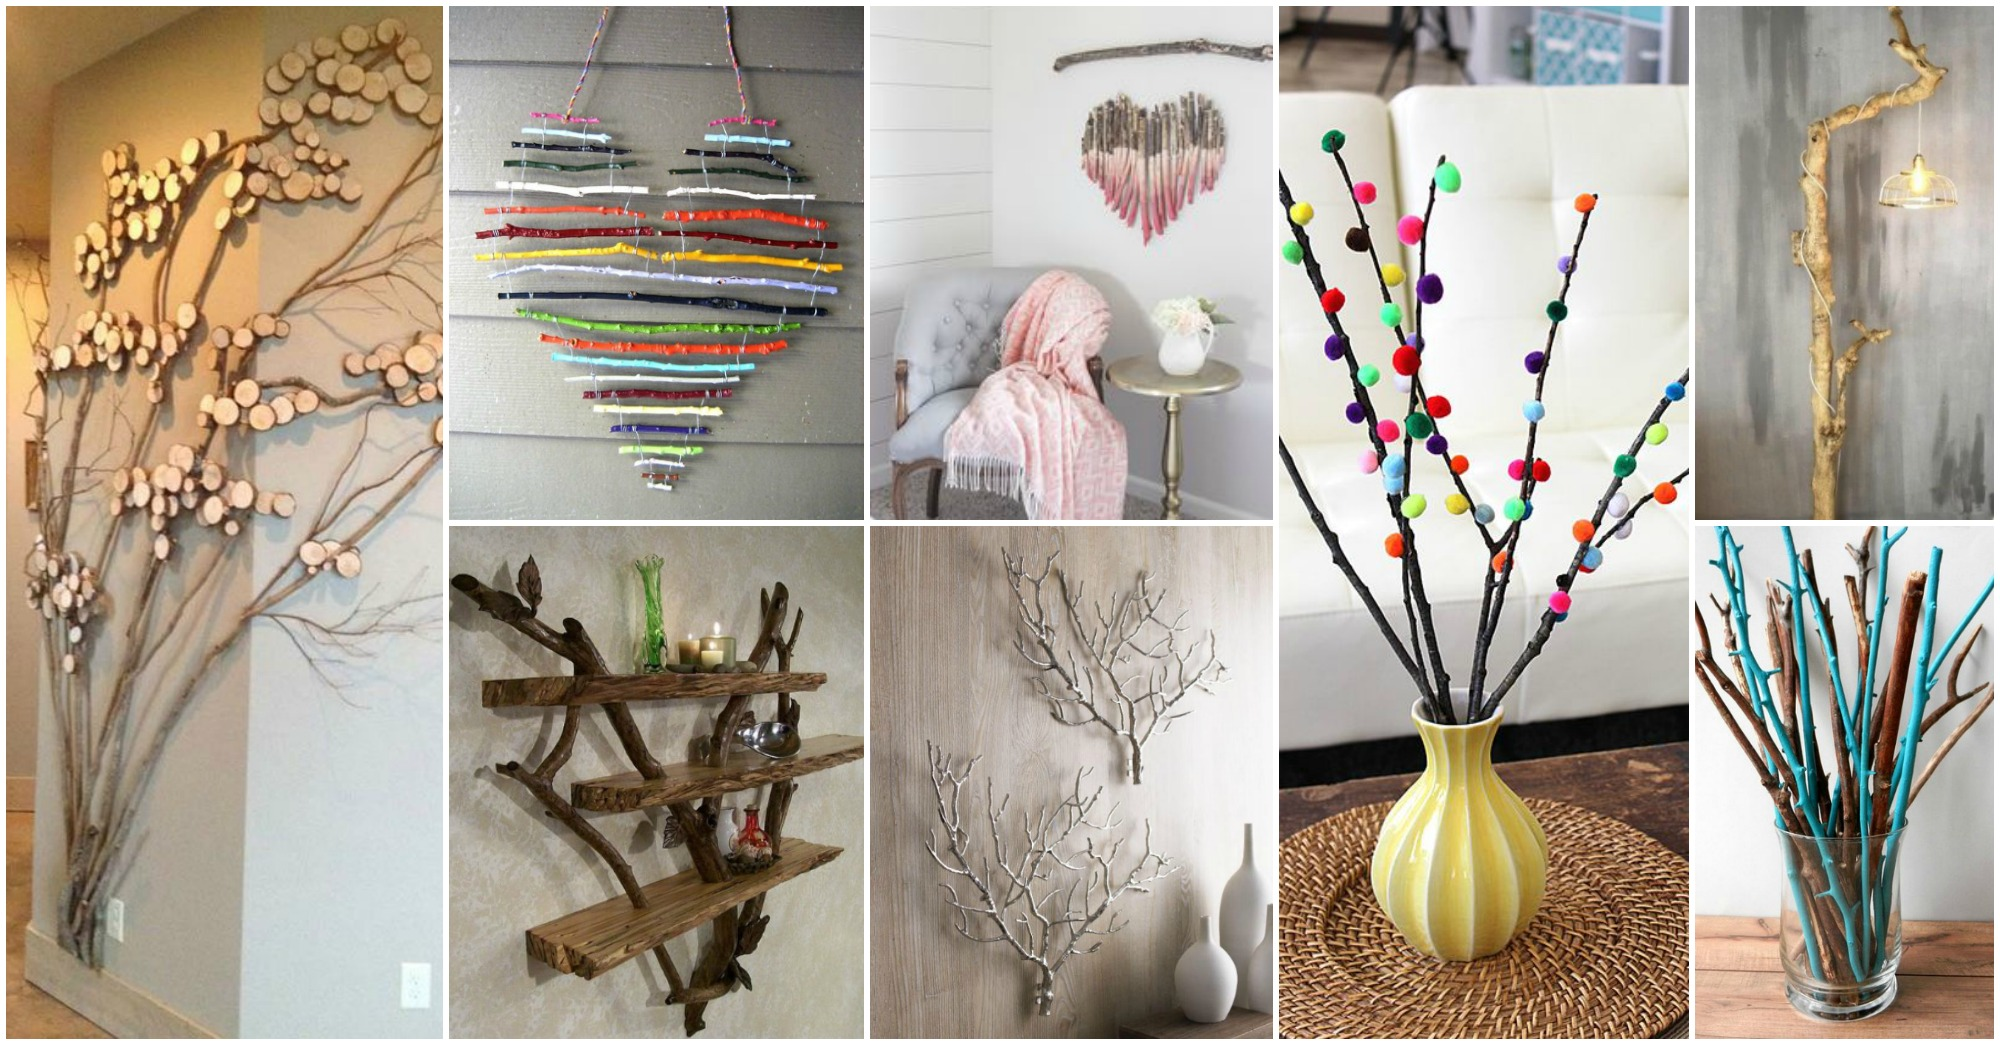 Regaling Diy Tree Branches Home Decor Ideas That You Will Love To Copy Diy Decor Ideas Room Diy Decor Ideas Kitchen home decor Diy Decor Ideas